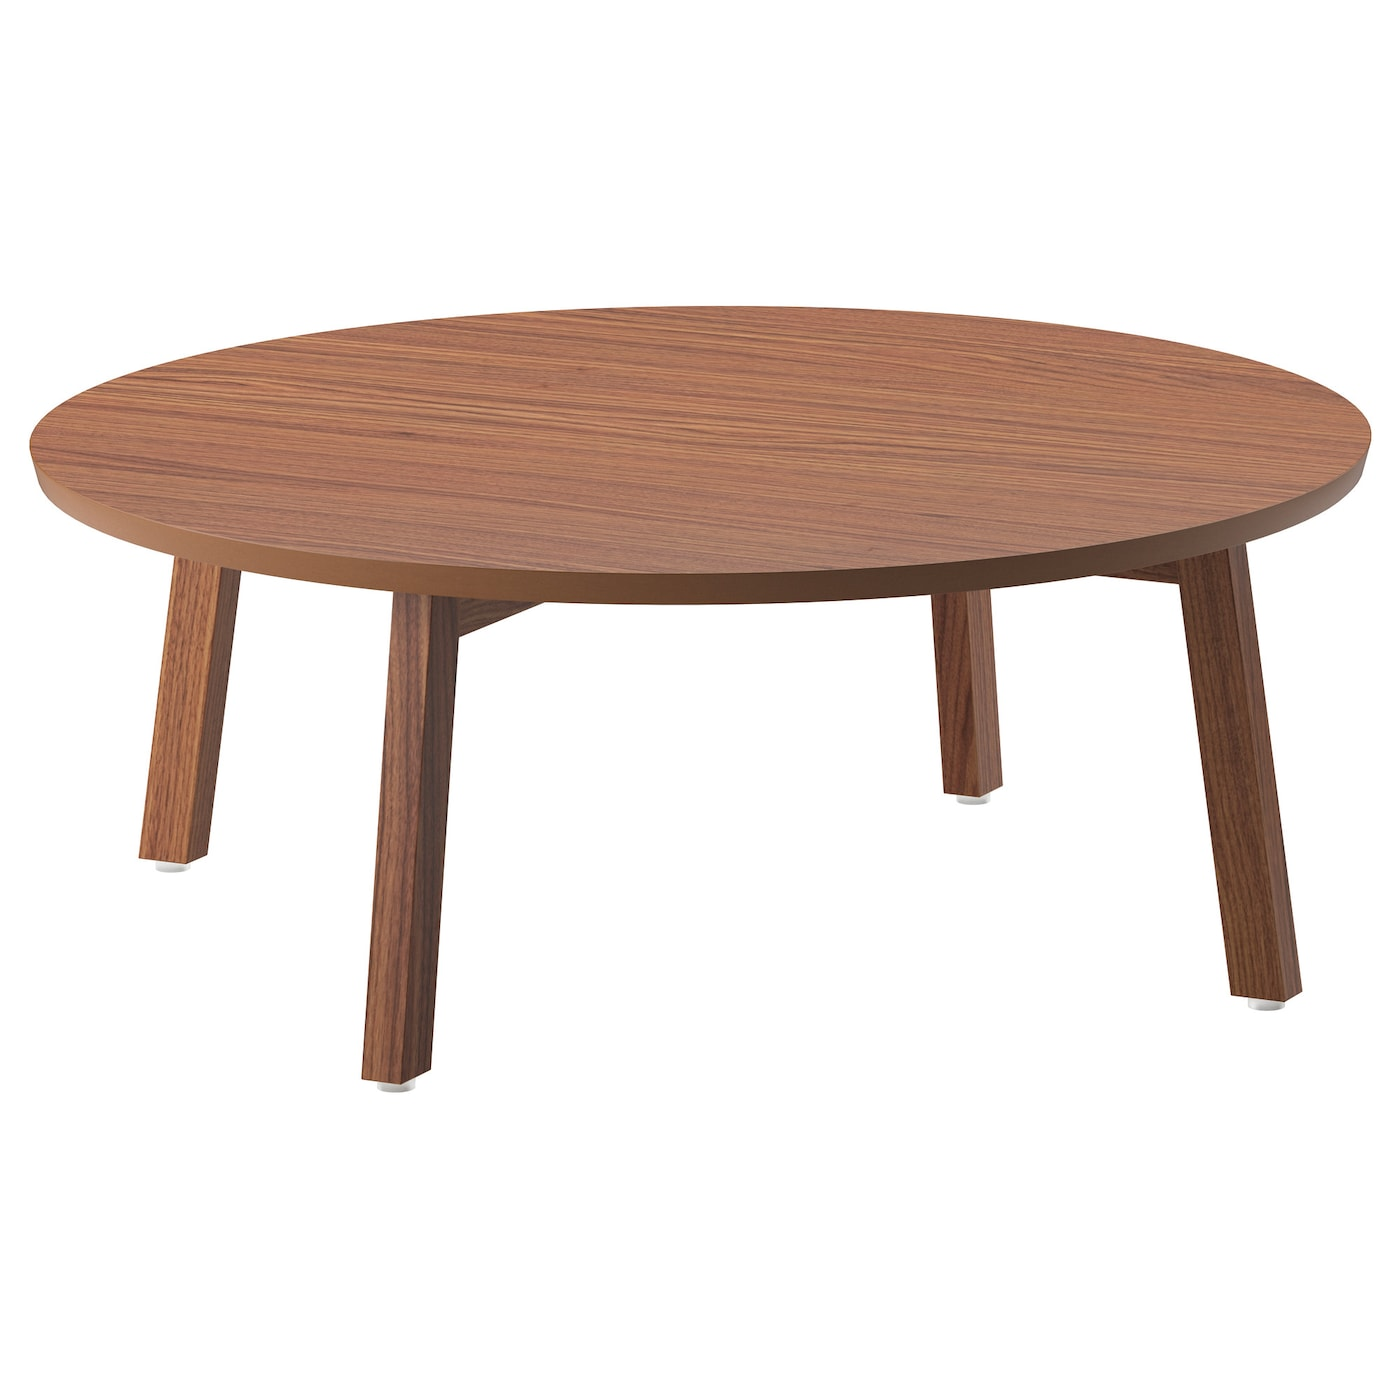 Stockholm coffee table walnut veneer 93 cm ikea - Table basse design ronde ...